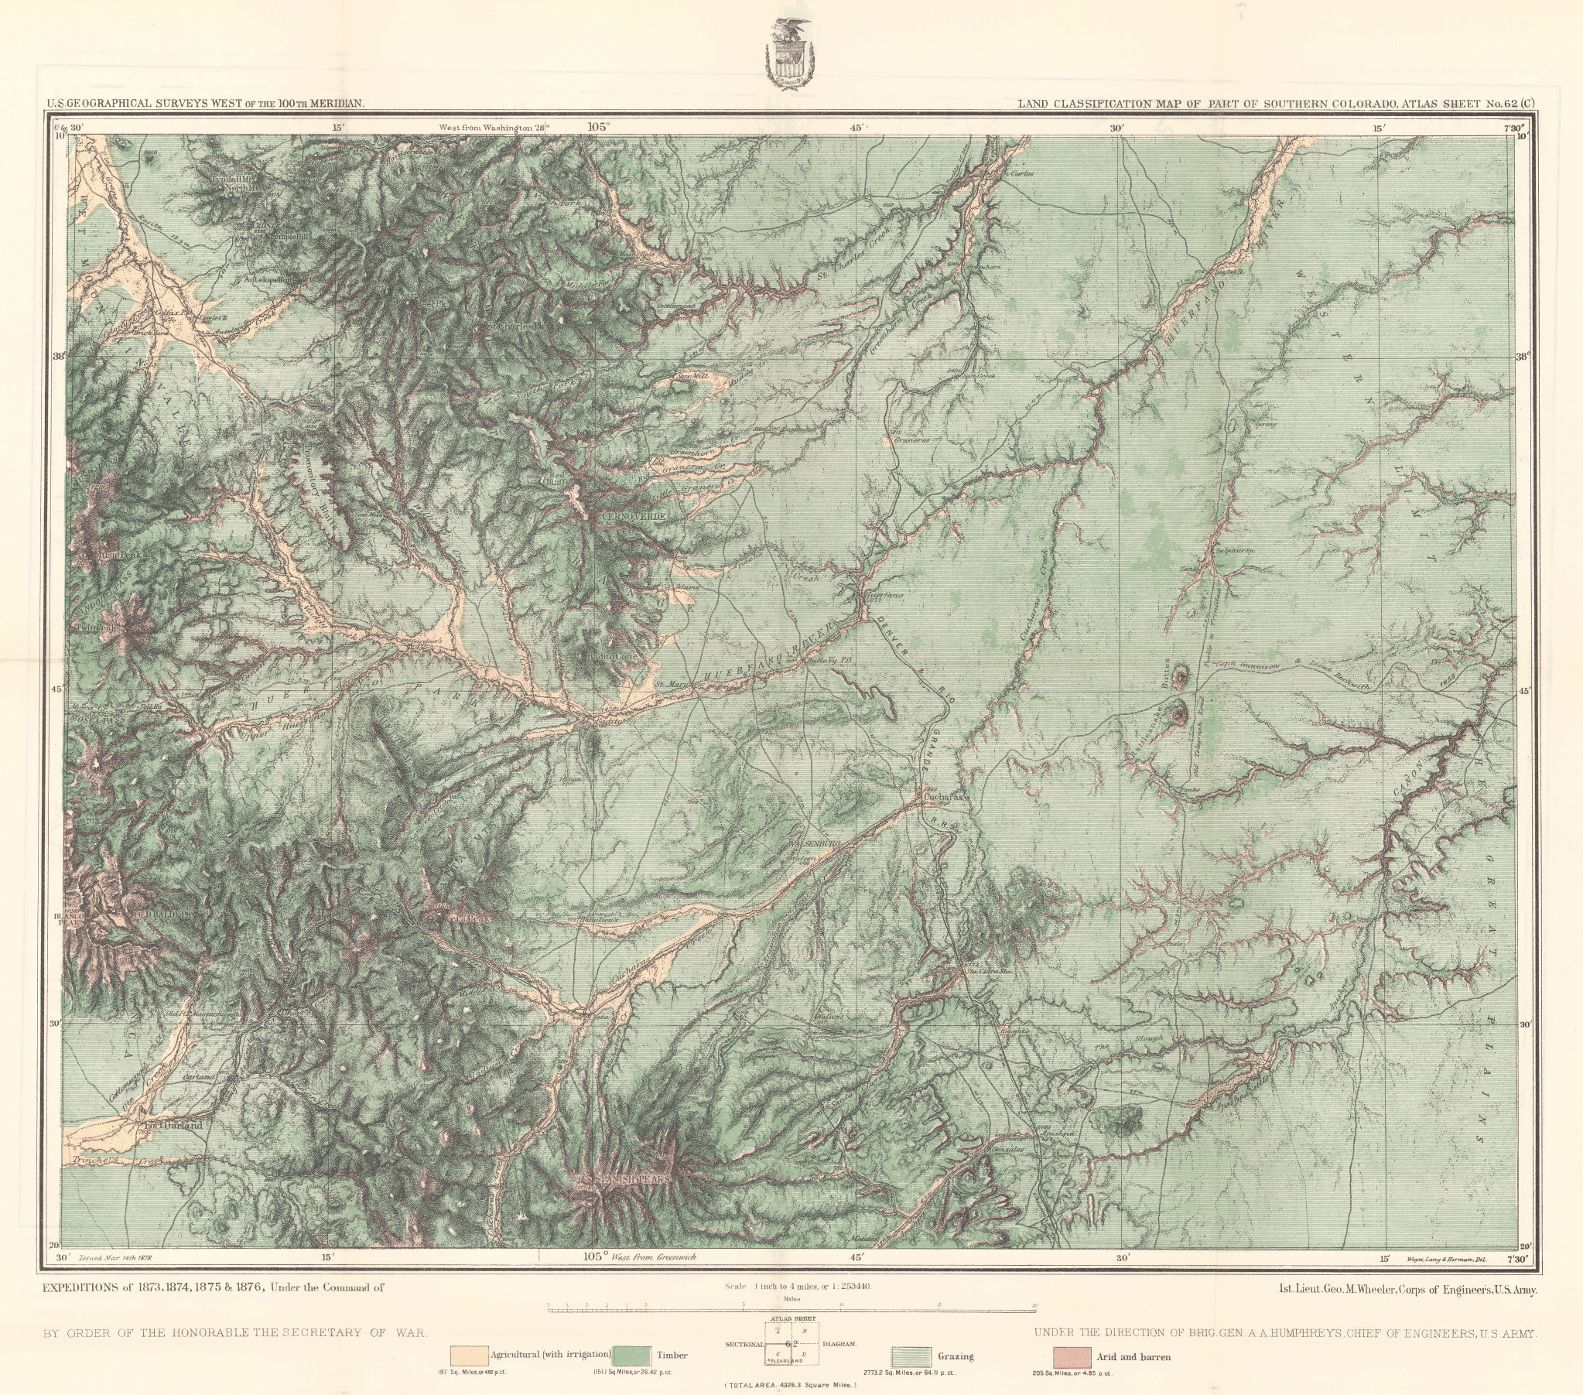 Land classification map of part of southern colorado 1878 us land classification map of part of southern colorado 1878 us geological survey wheeler george montague publicscrutiny Images